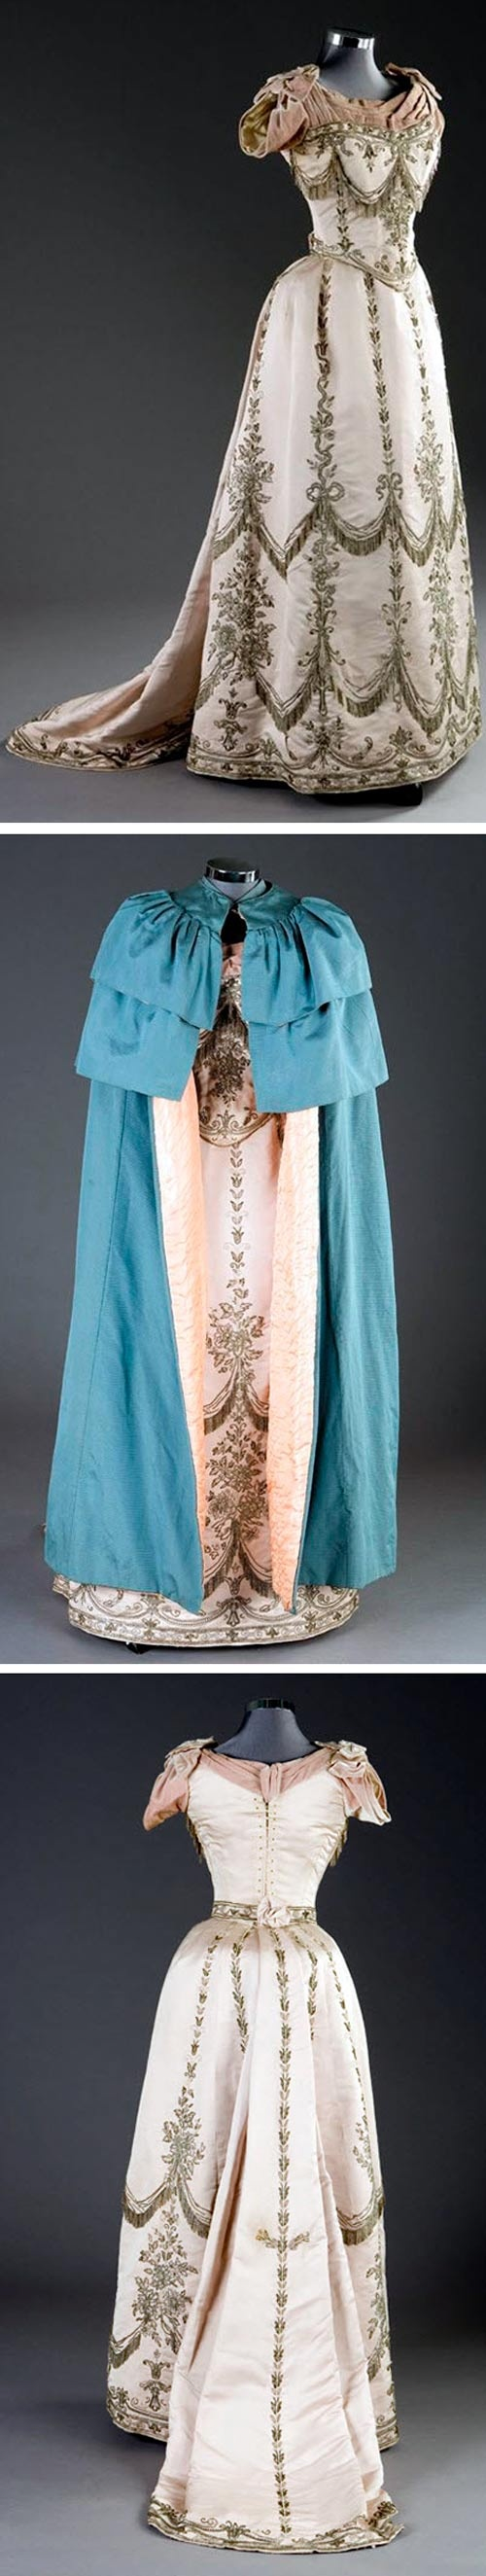 Ball Gown, House of Worth & Evening Cape, Lemmonier -- 1888 -- Kerry Taylor Auctions